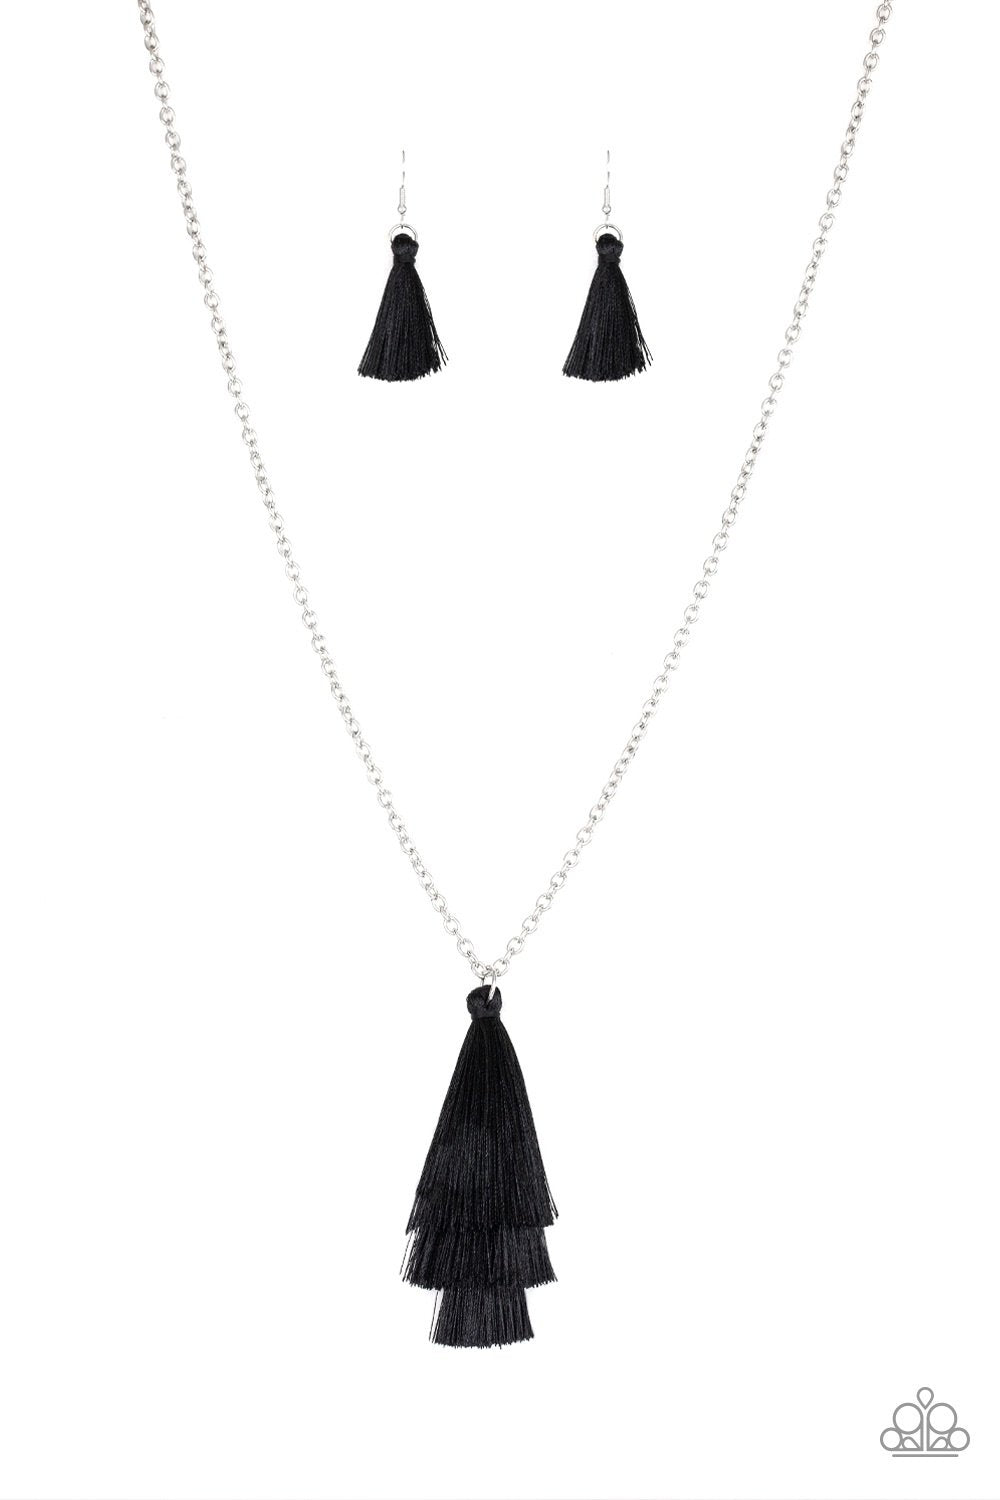 Triple The Tassel Black Necklace